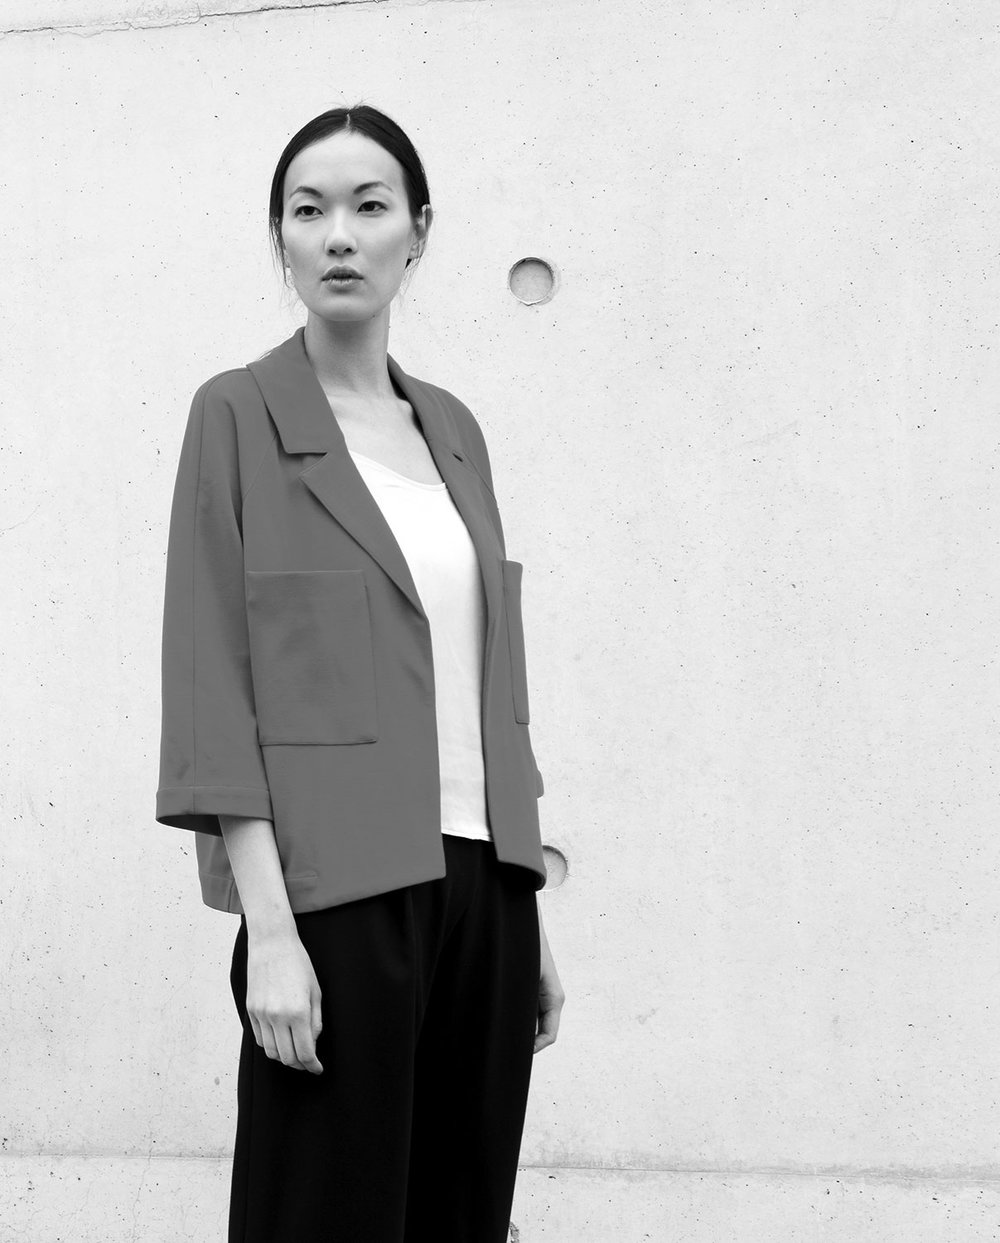 Jeong-Eun Seo - jeeij is a fashion label with an own design studio based in Berlin that blends exceptional cuts with high wearing comfort and sophisticated design rooted in Asian backgrounds.The designer Jeong-Eun Seo founded her own label 2010 in Berlin Friedrichshain. Her designs are for fashion concious women who like to wear things which are worth looking twice. jeeij offers a range of tops, pullovers, cardigans, jackets, coats and dresses. Often her collections are changeable with some simple twists and creating so new looks and styles.The fabrics for her creations are mostly Italian and of very fine qualities and are 100% handmade.